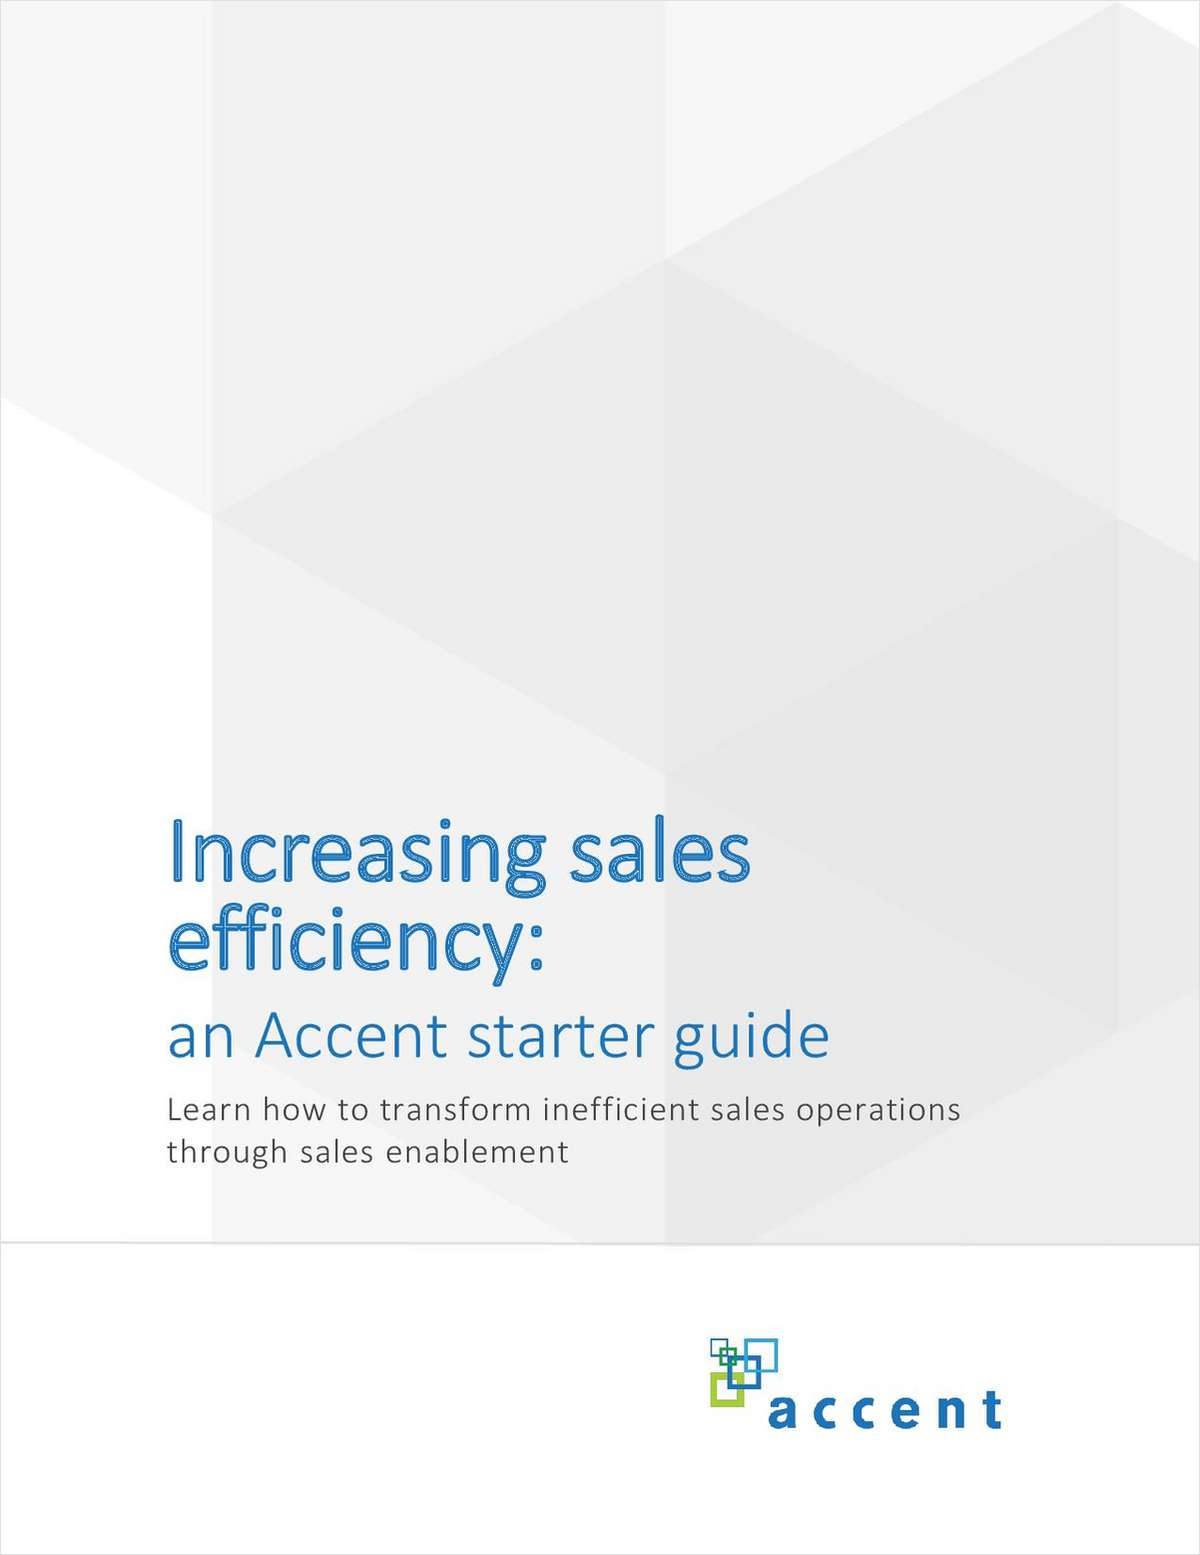 Increasing sales efficiency: an Accent starter guide